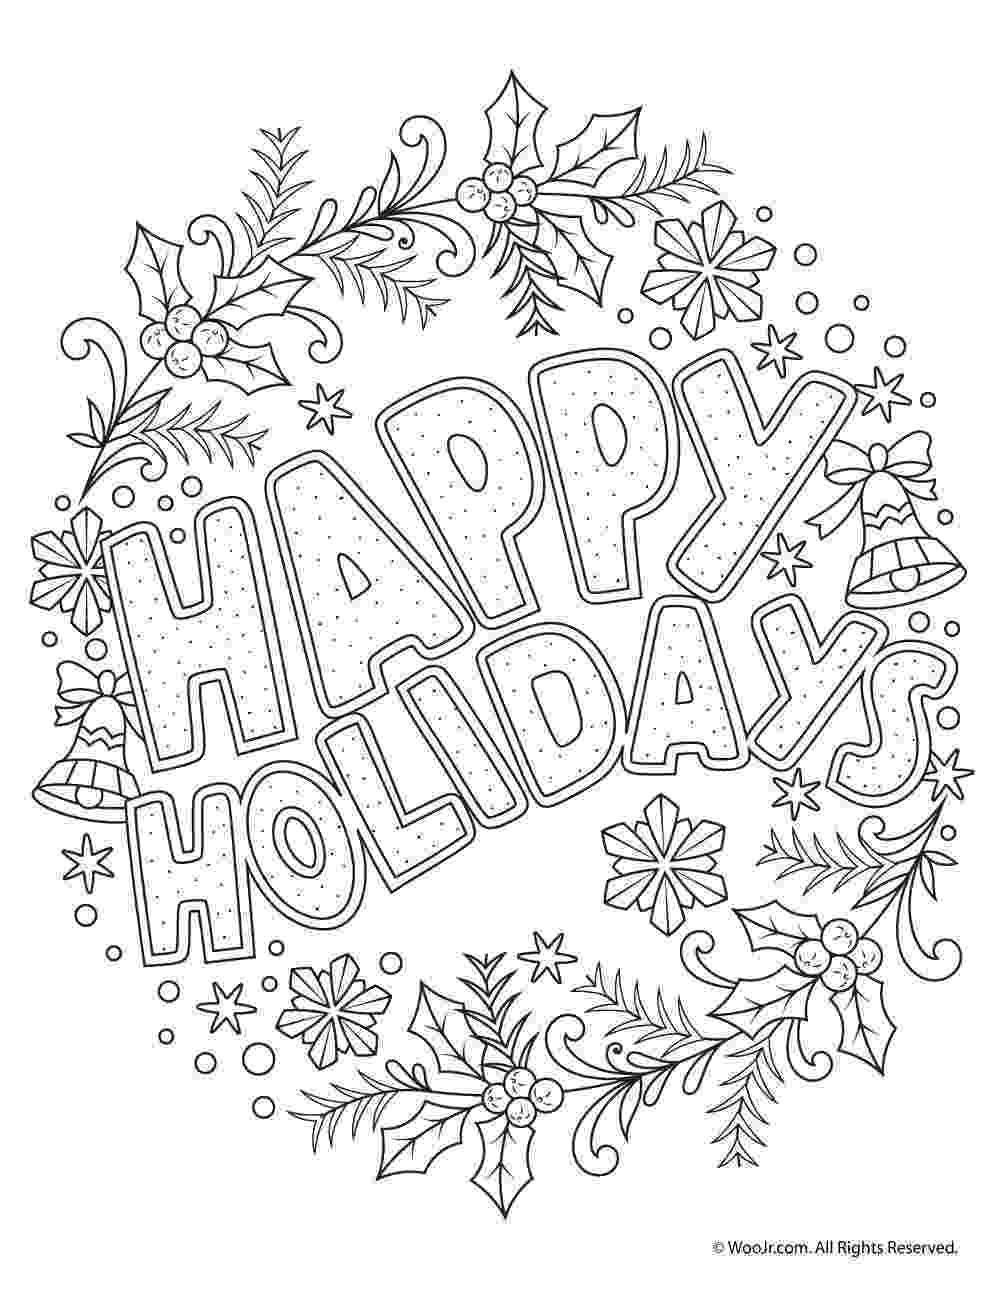 christmas colouring pages for adults printable 21 christmas printable coloring pages everythingetsycom pages for colouring adults christmas printable